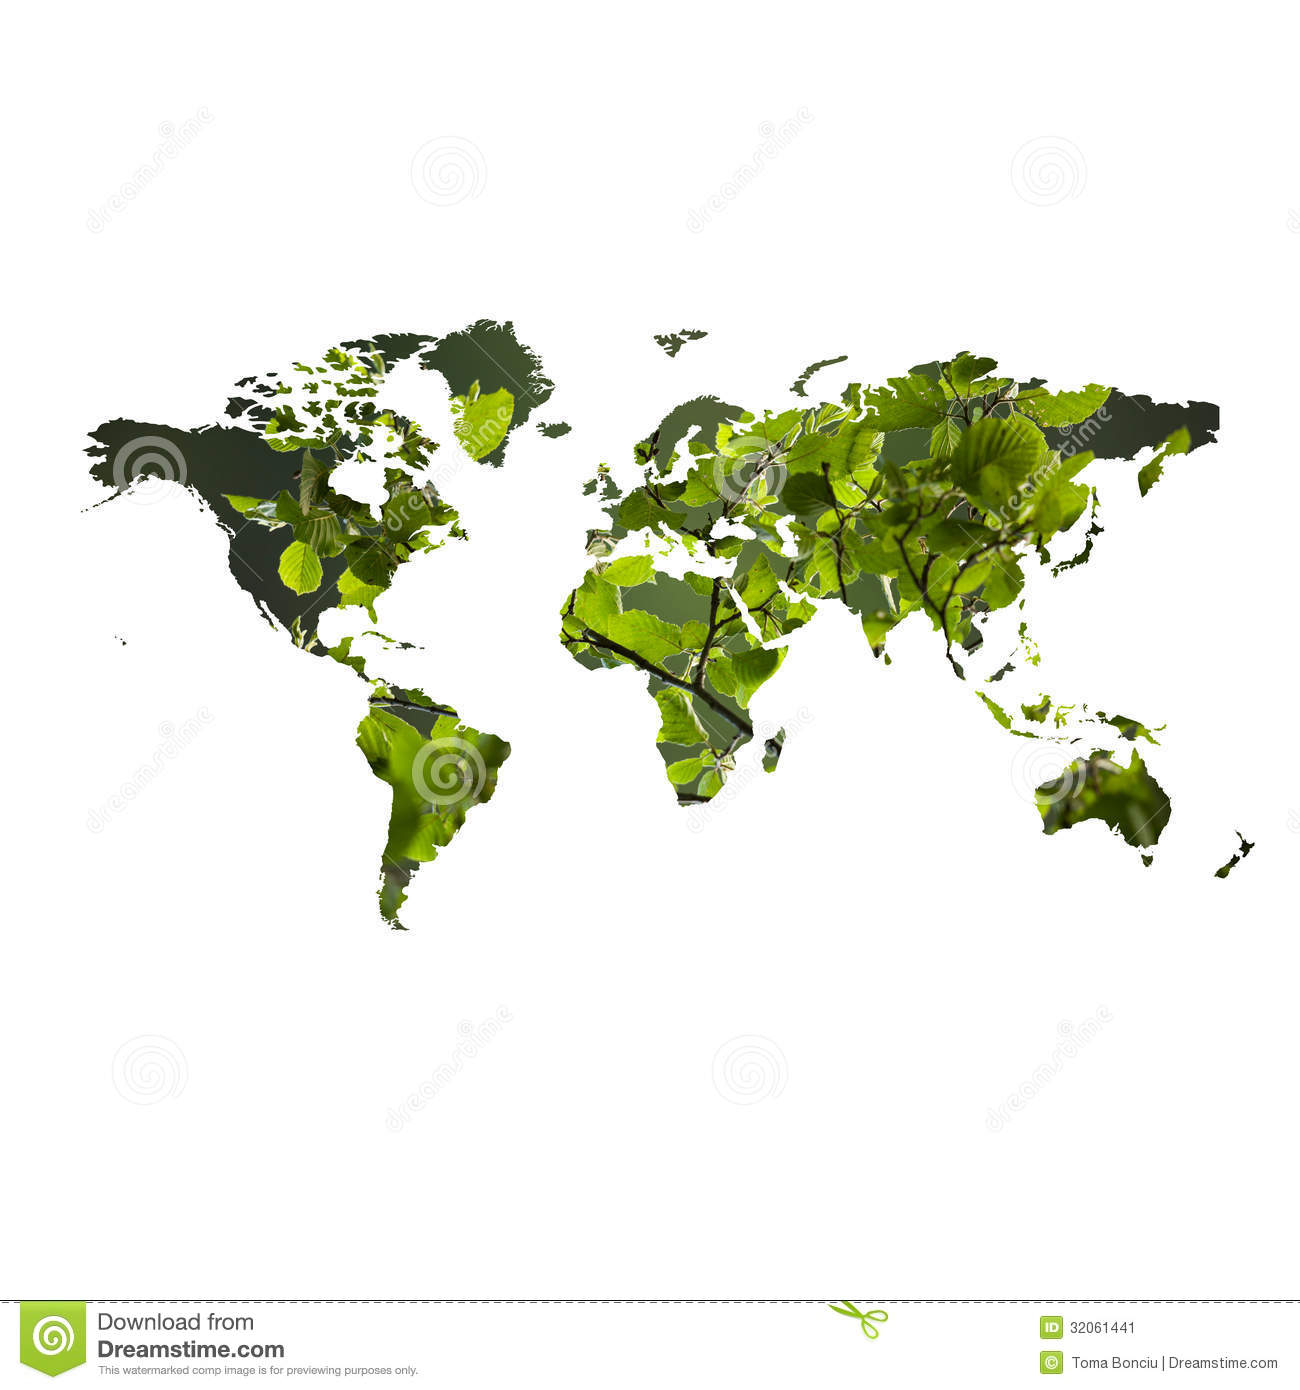 Environmental Concept Earthfriendly Landscapes: Eco Friendly Concept With Map Of The World Stock Image